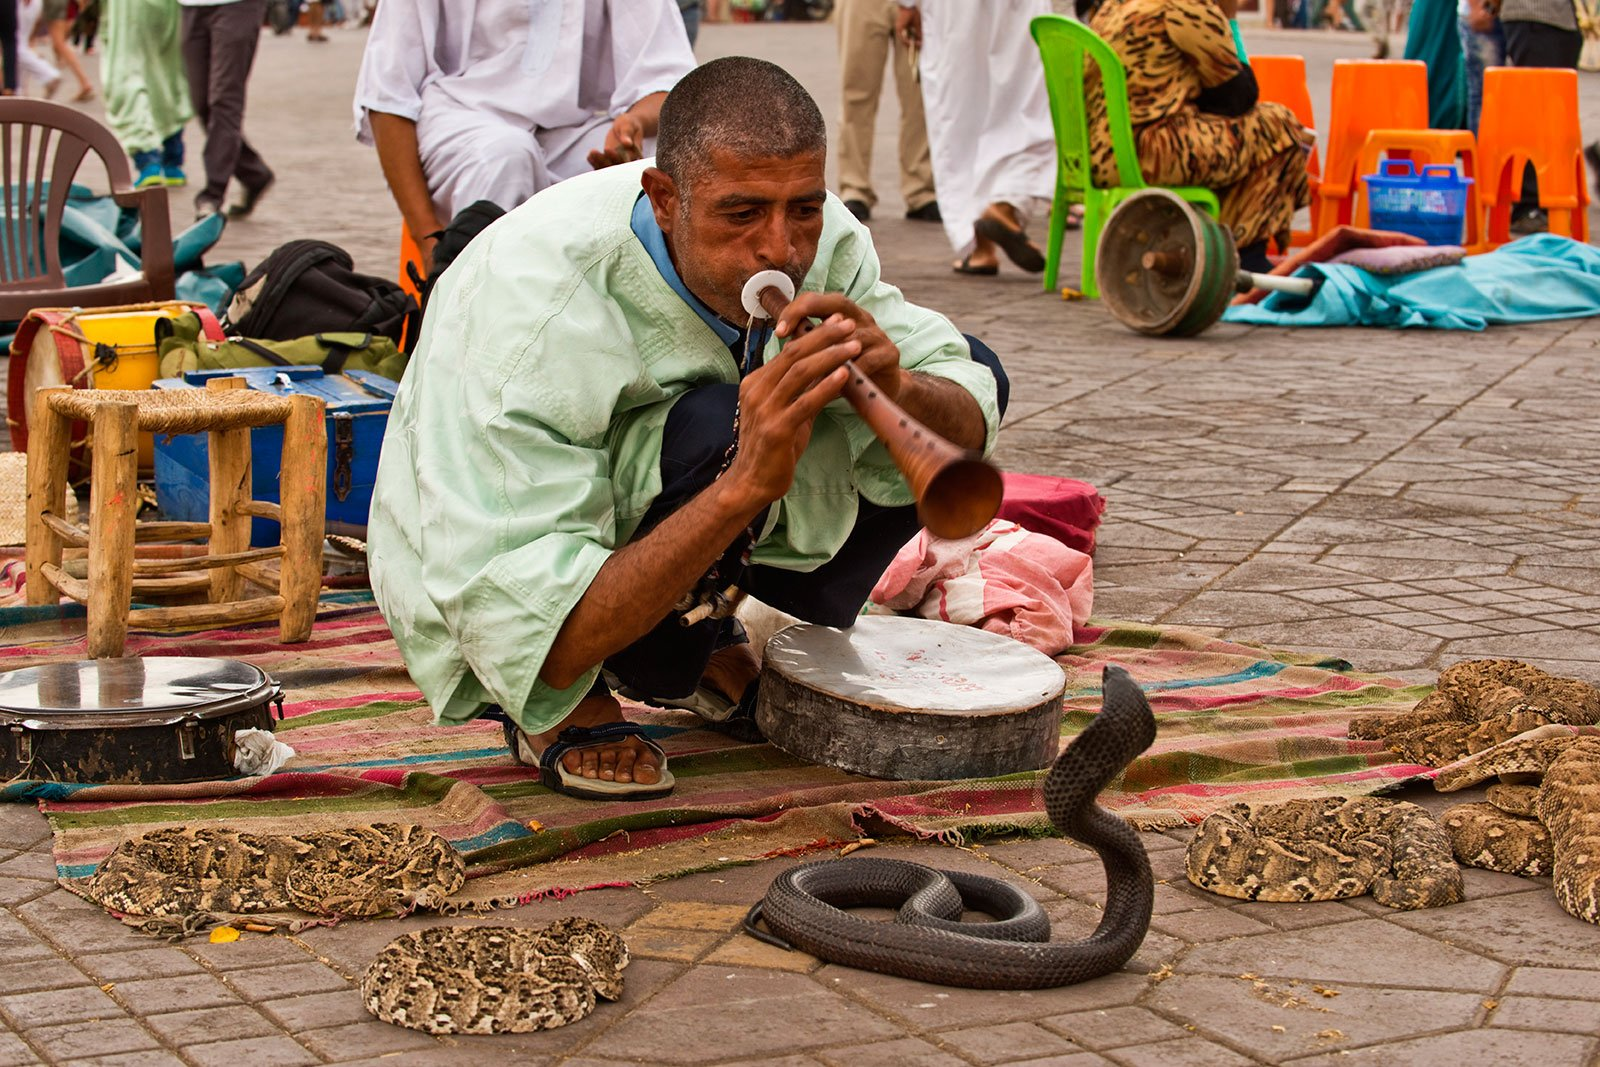 How to see snake charmers in Marrakesh